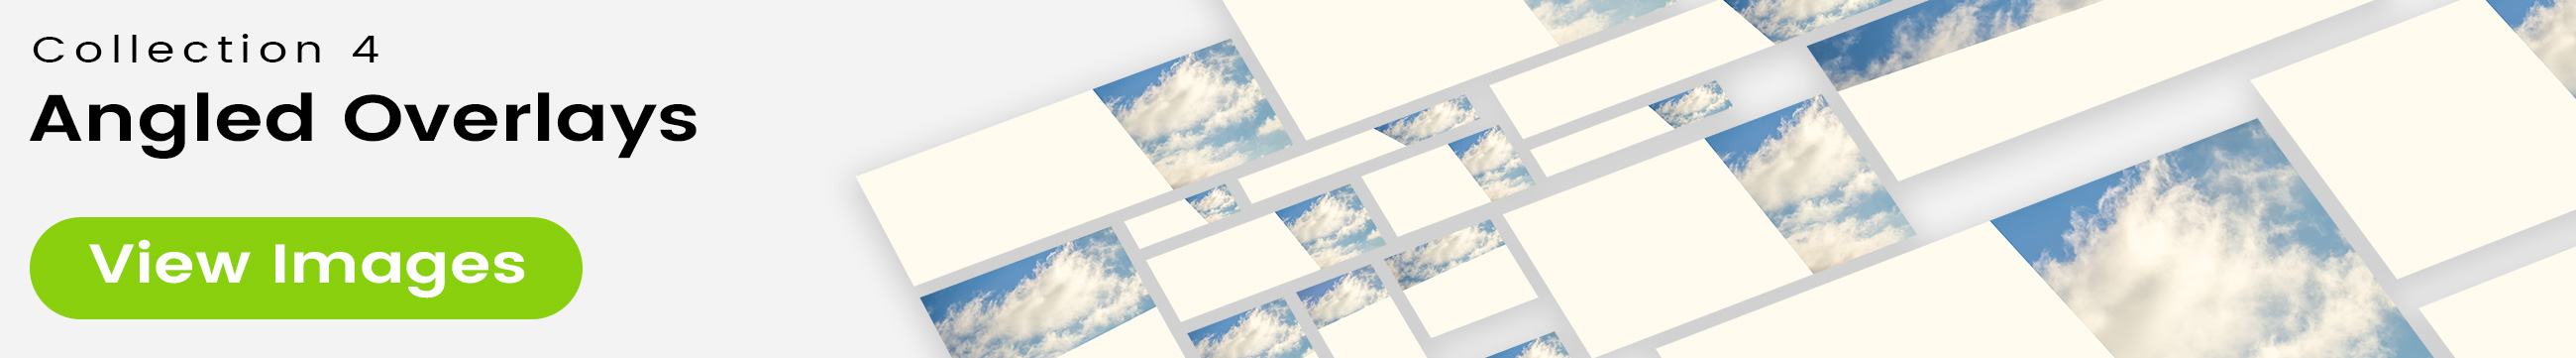 See 25 bonus images included with clouds stock image 9464. Collection 4 of 4 features an angled overlay design customized with a color that complements each photo.